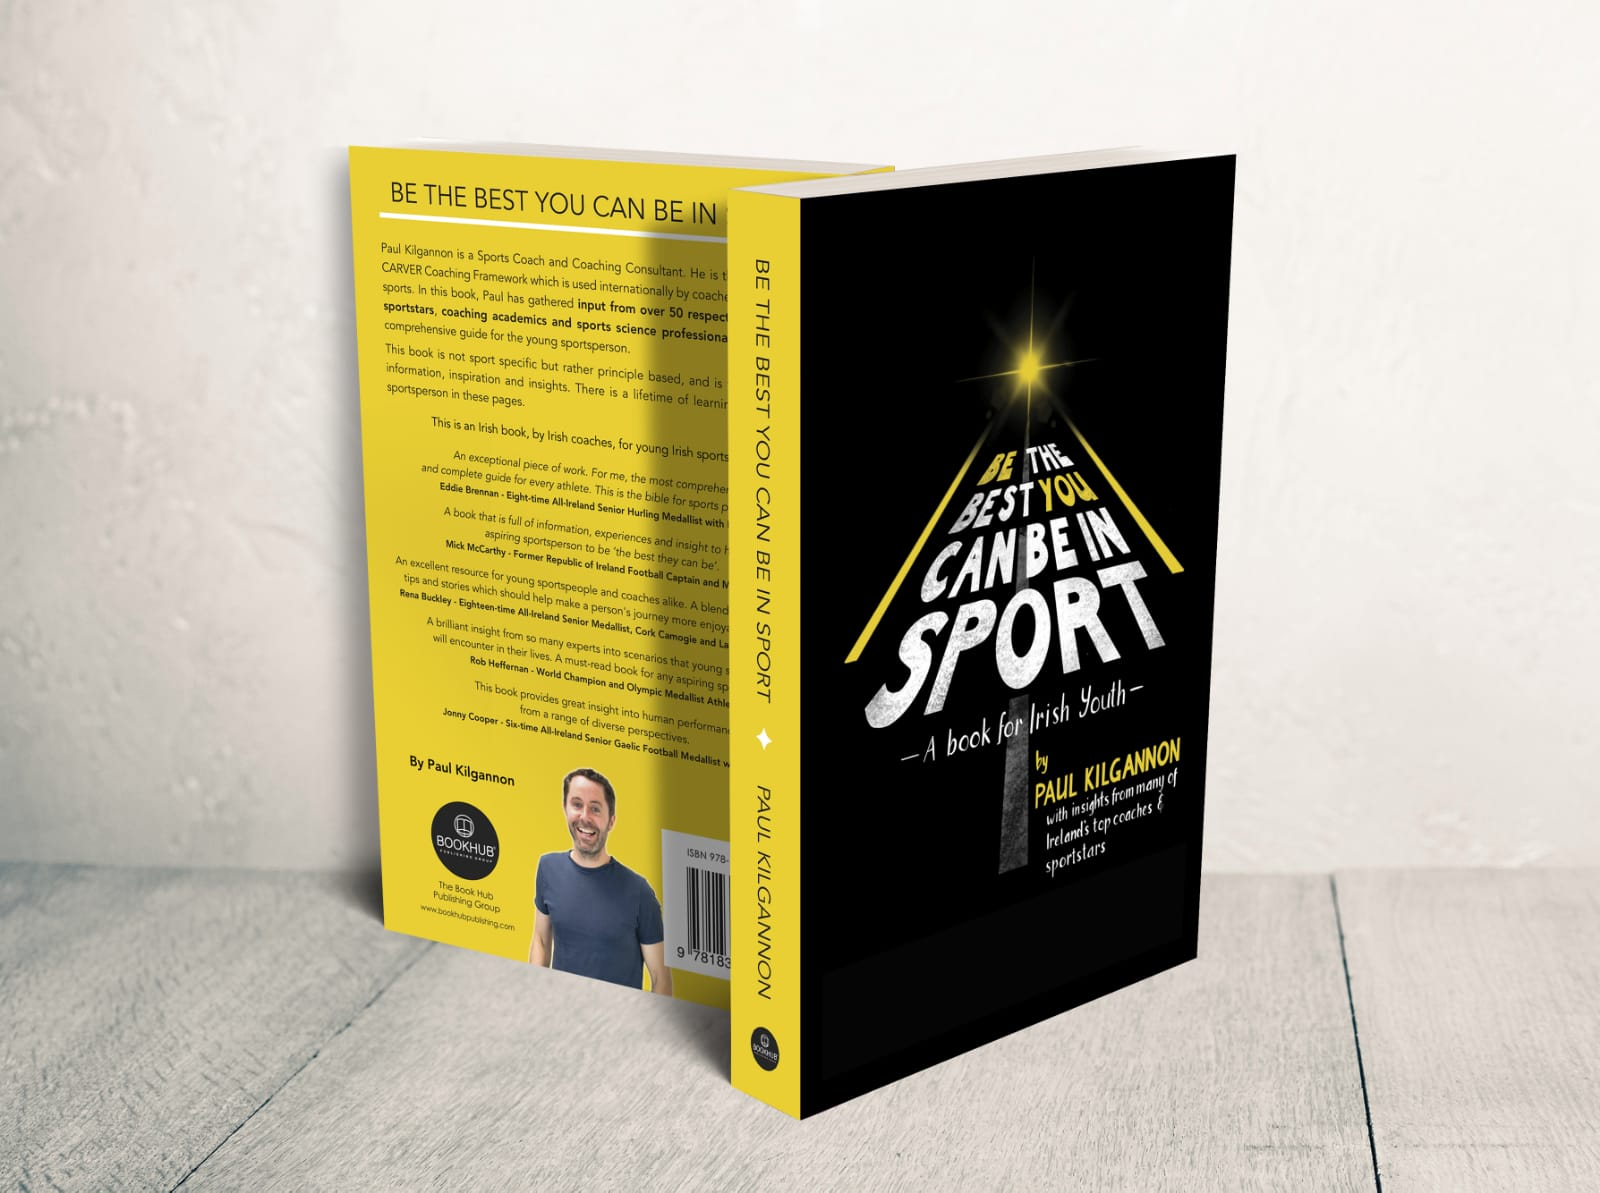 """Paul Kilgannon's New Book """"Be The Best You Can Be In Sport"""""""